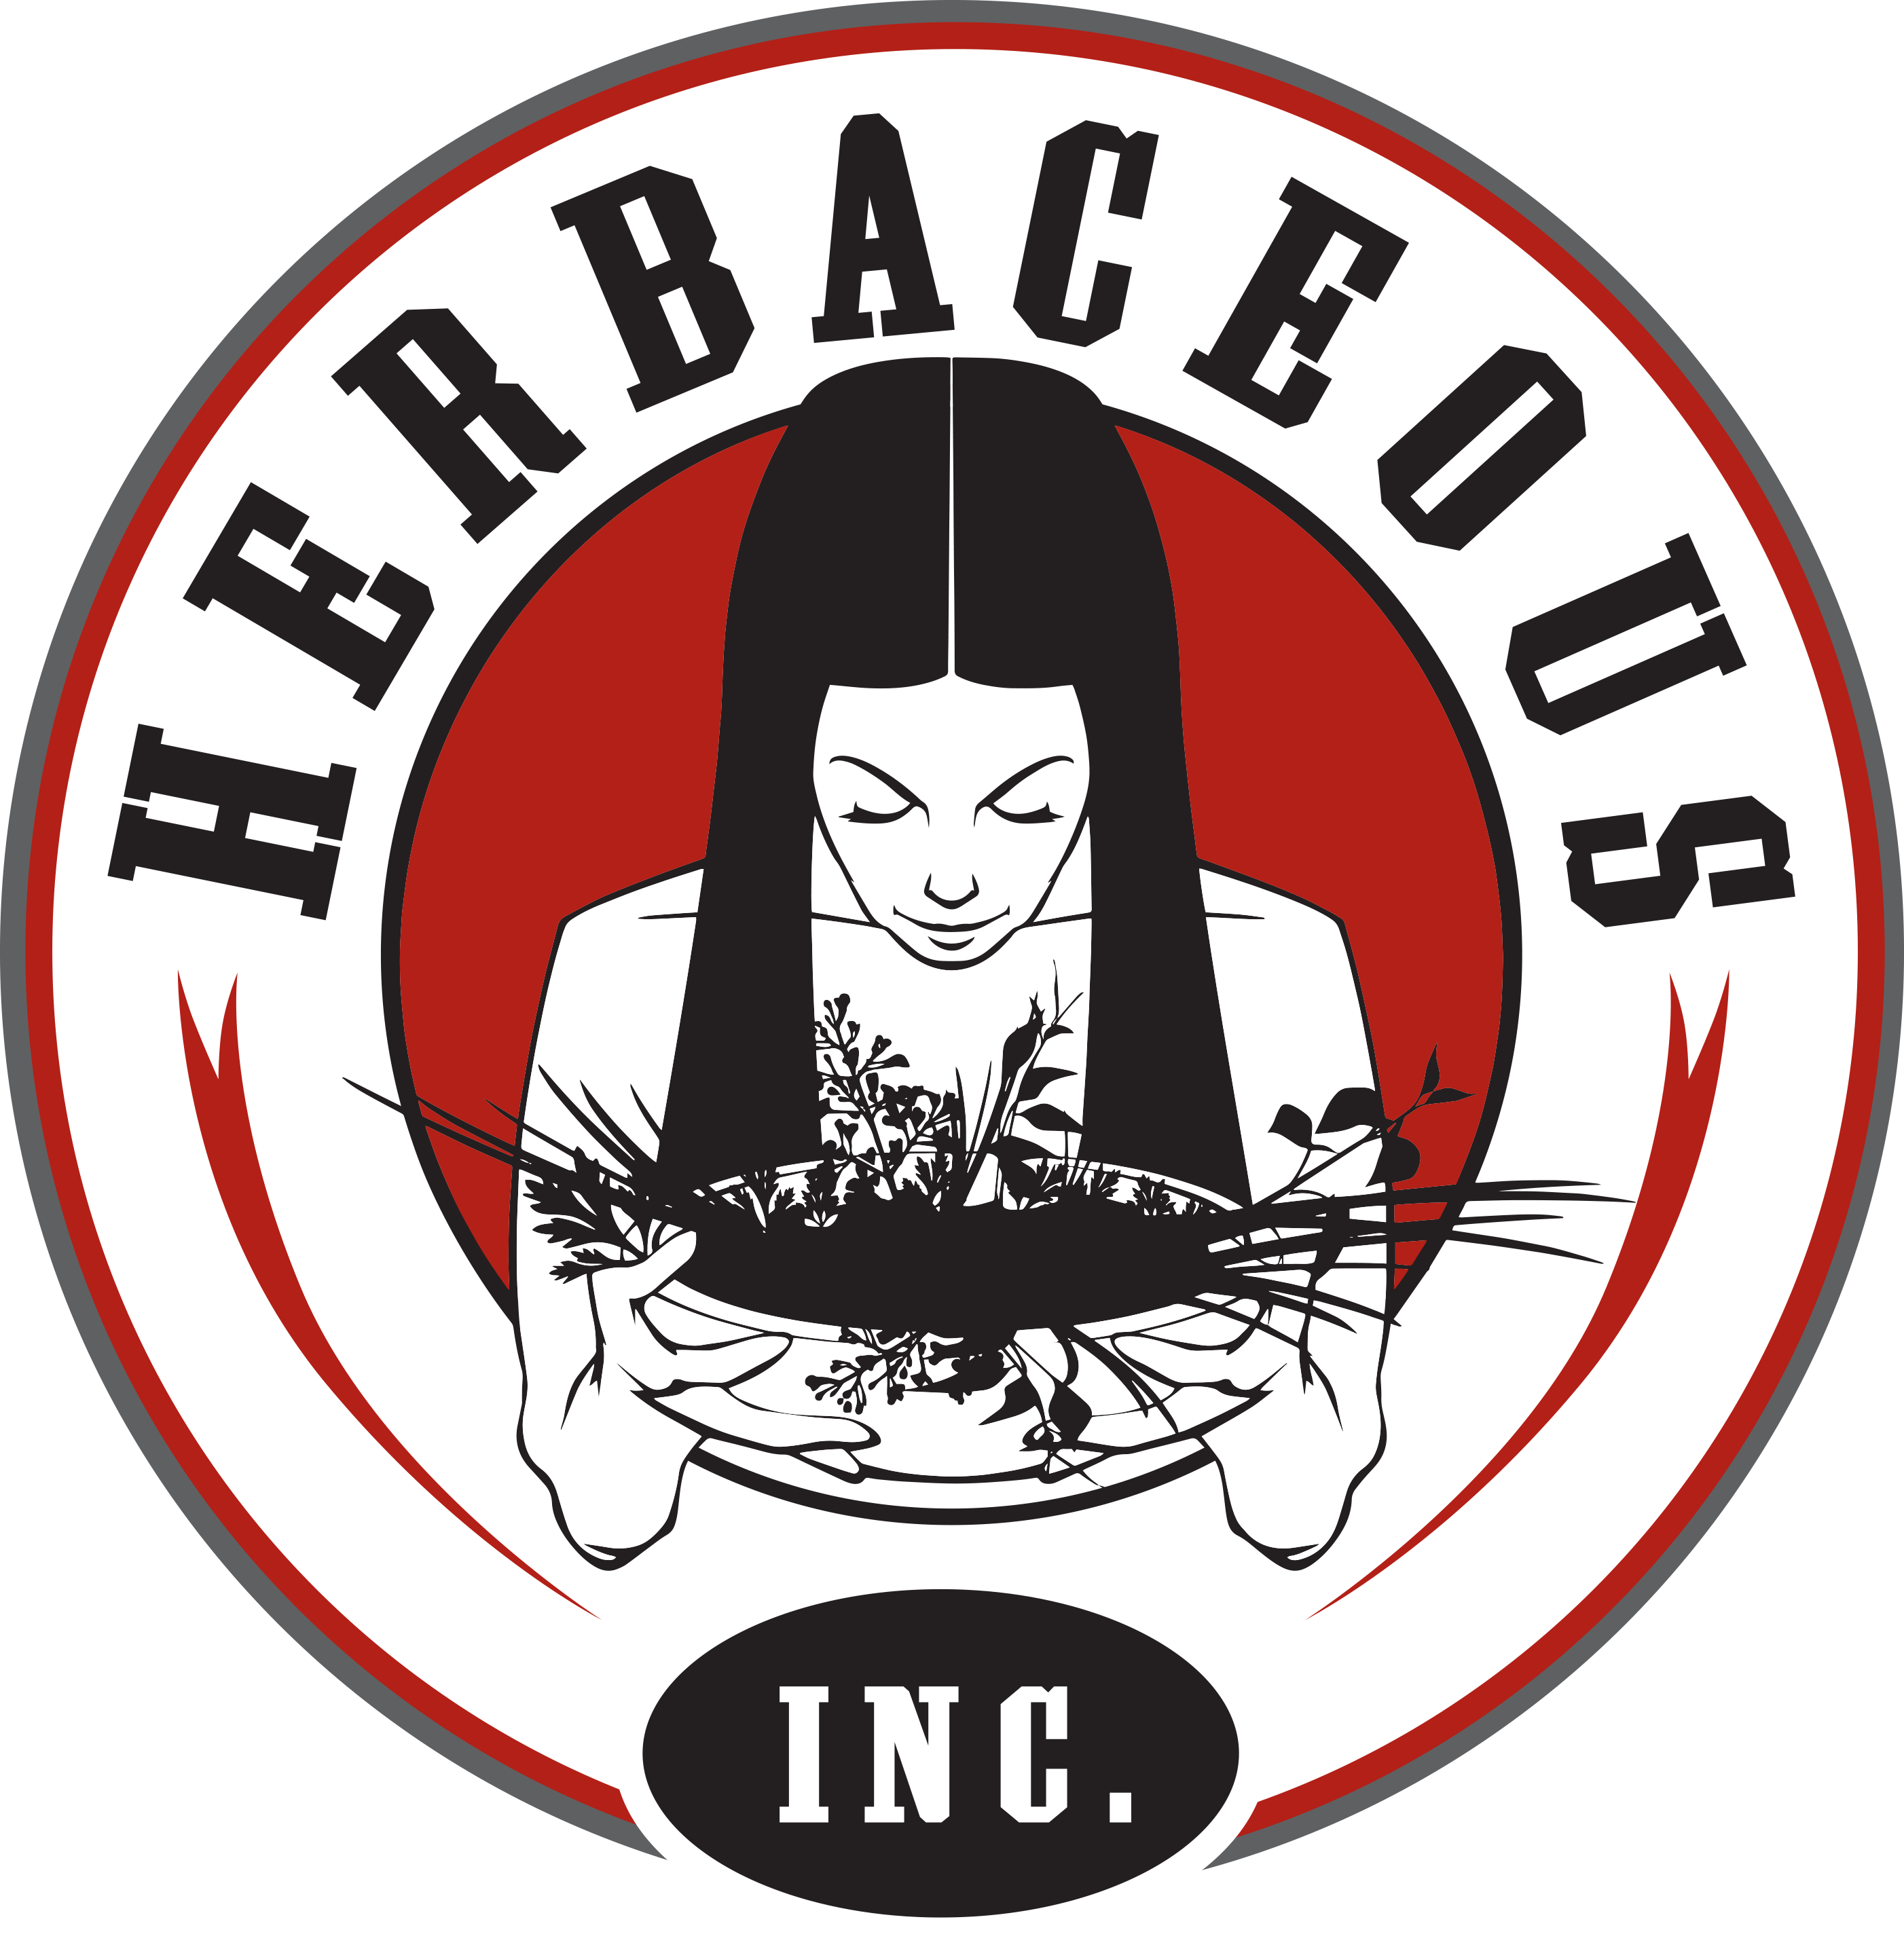 Herbaceous Inc.